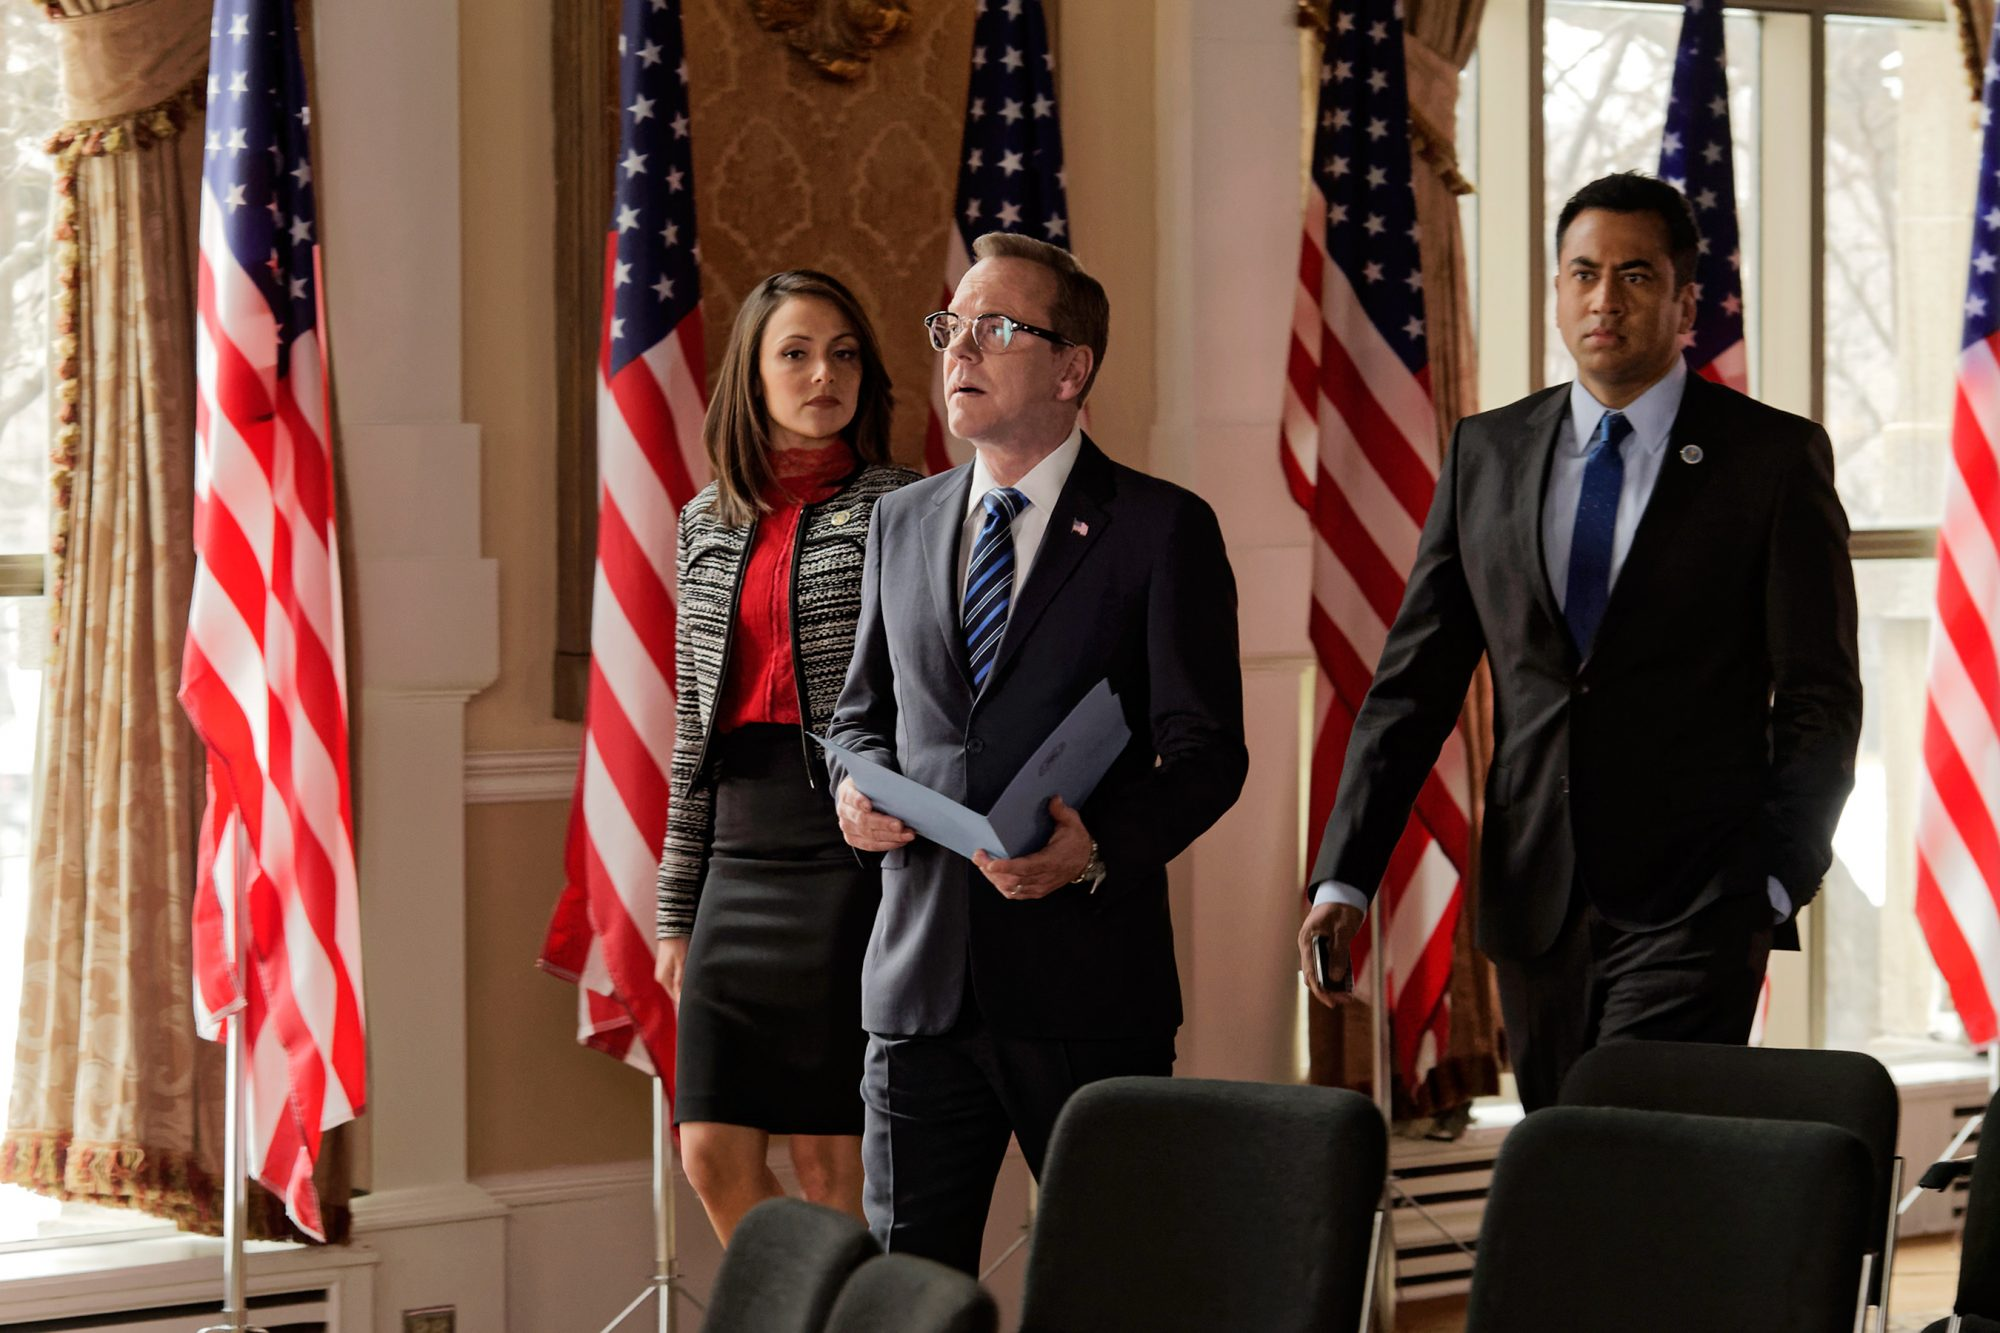 RECAP 4/5/17: Designated Survivor